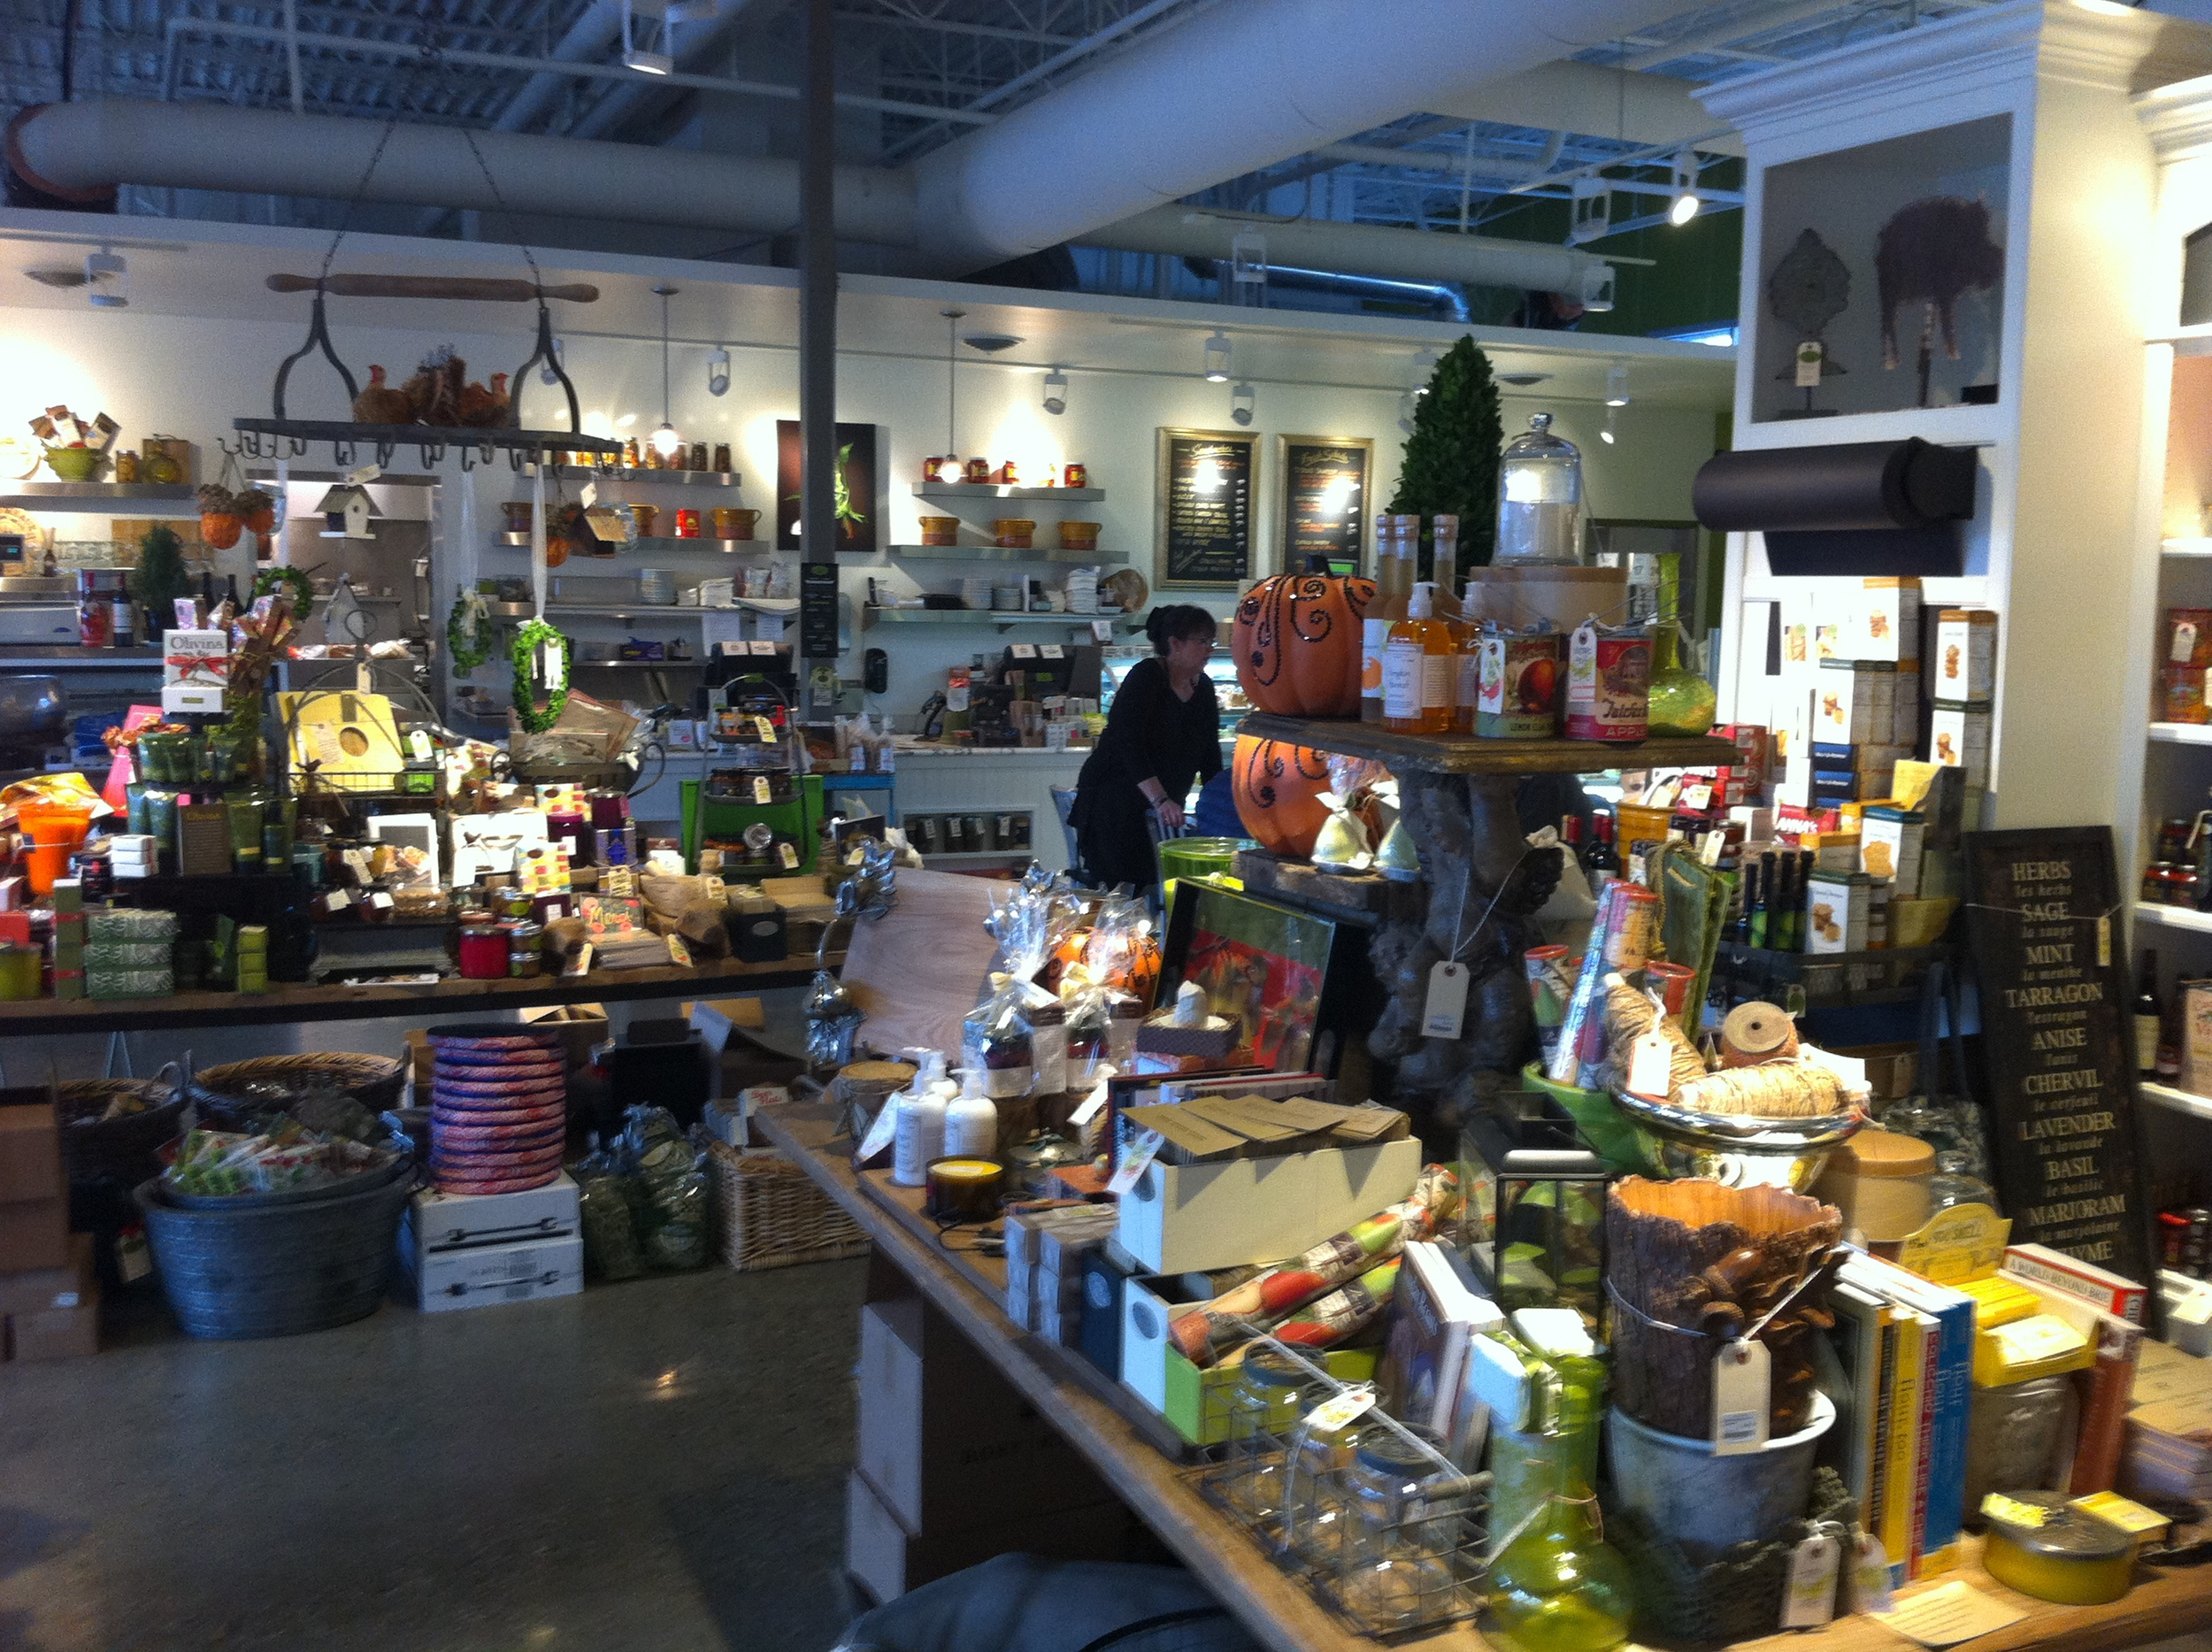 """a""""Tavola Gourmet Marketplace would be at home in Vancouver's Yaletown, Portland's Pearl District, Chicago's Gold Coast or Calgary's Beltline district."""